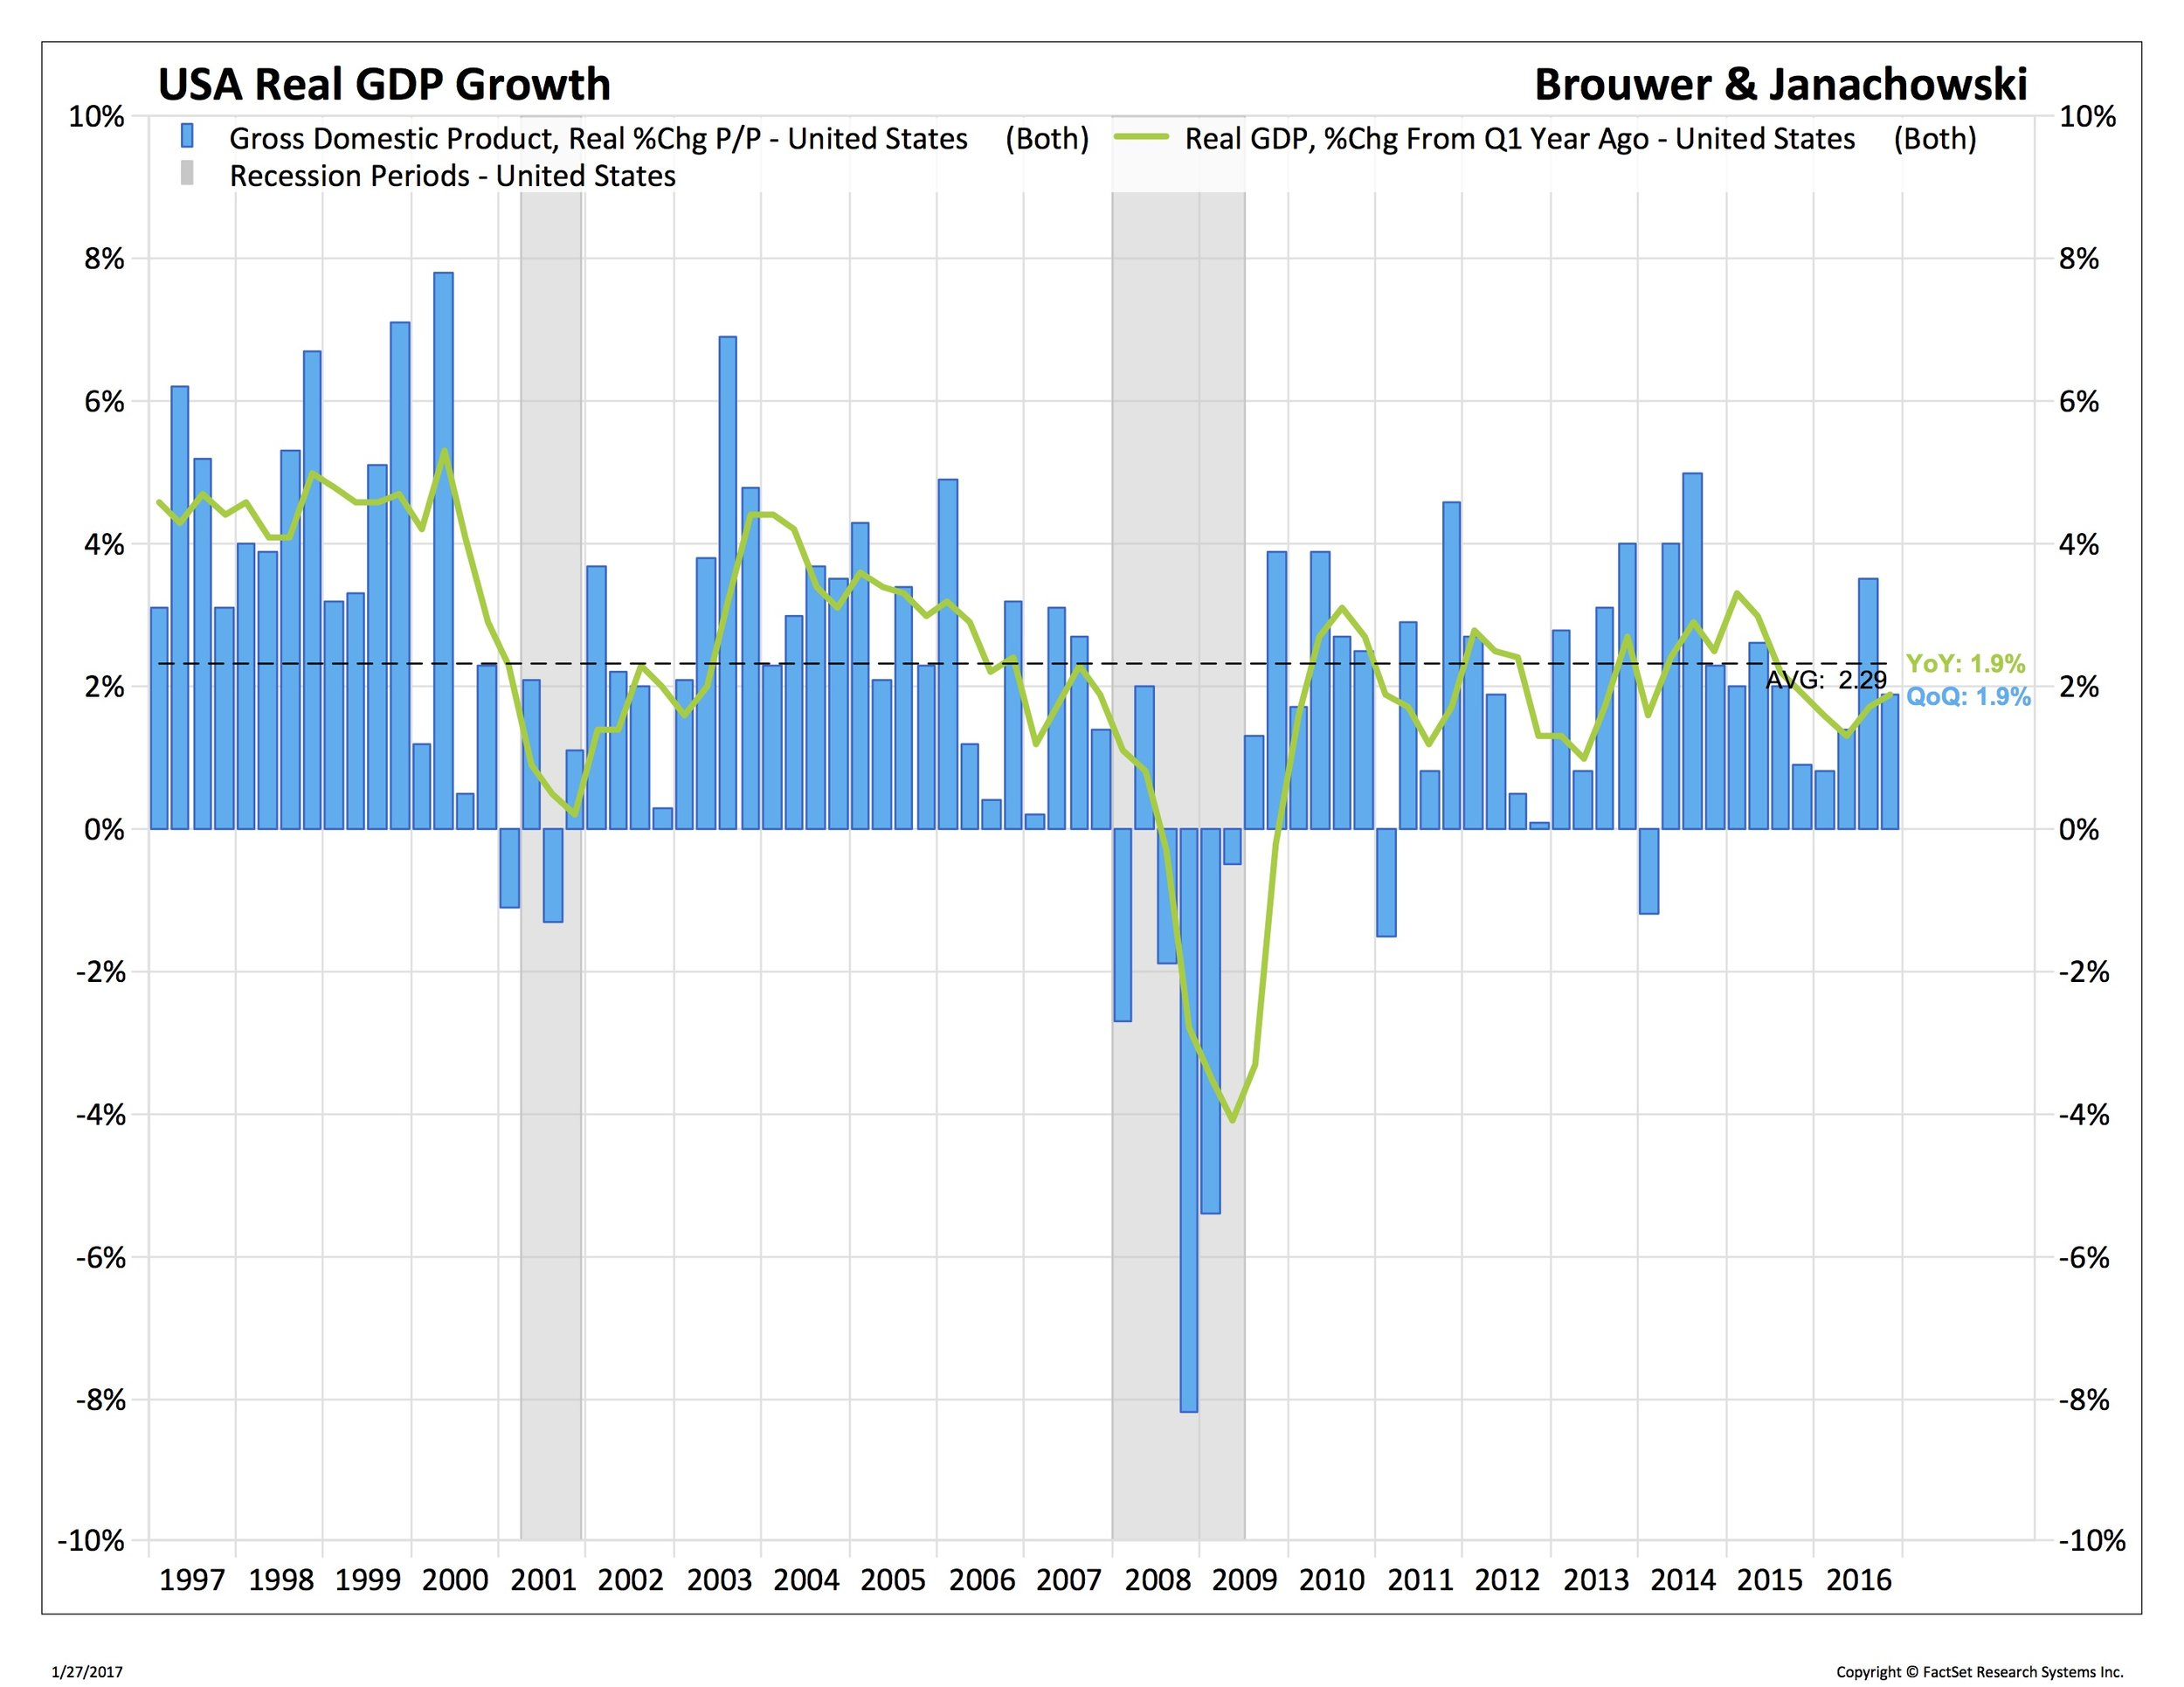 USA real GDP growth